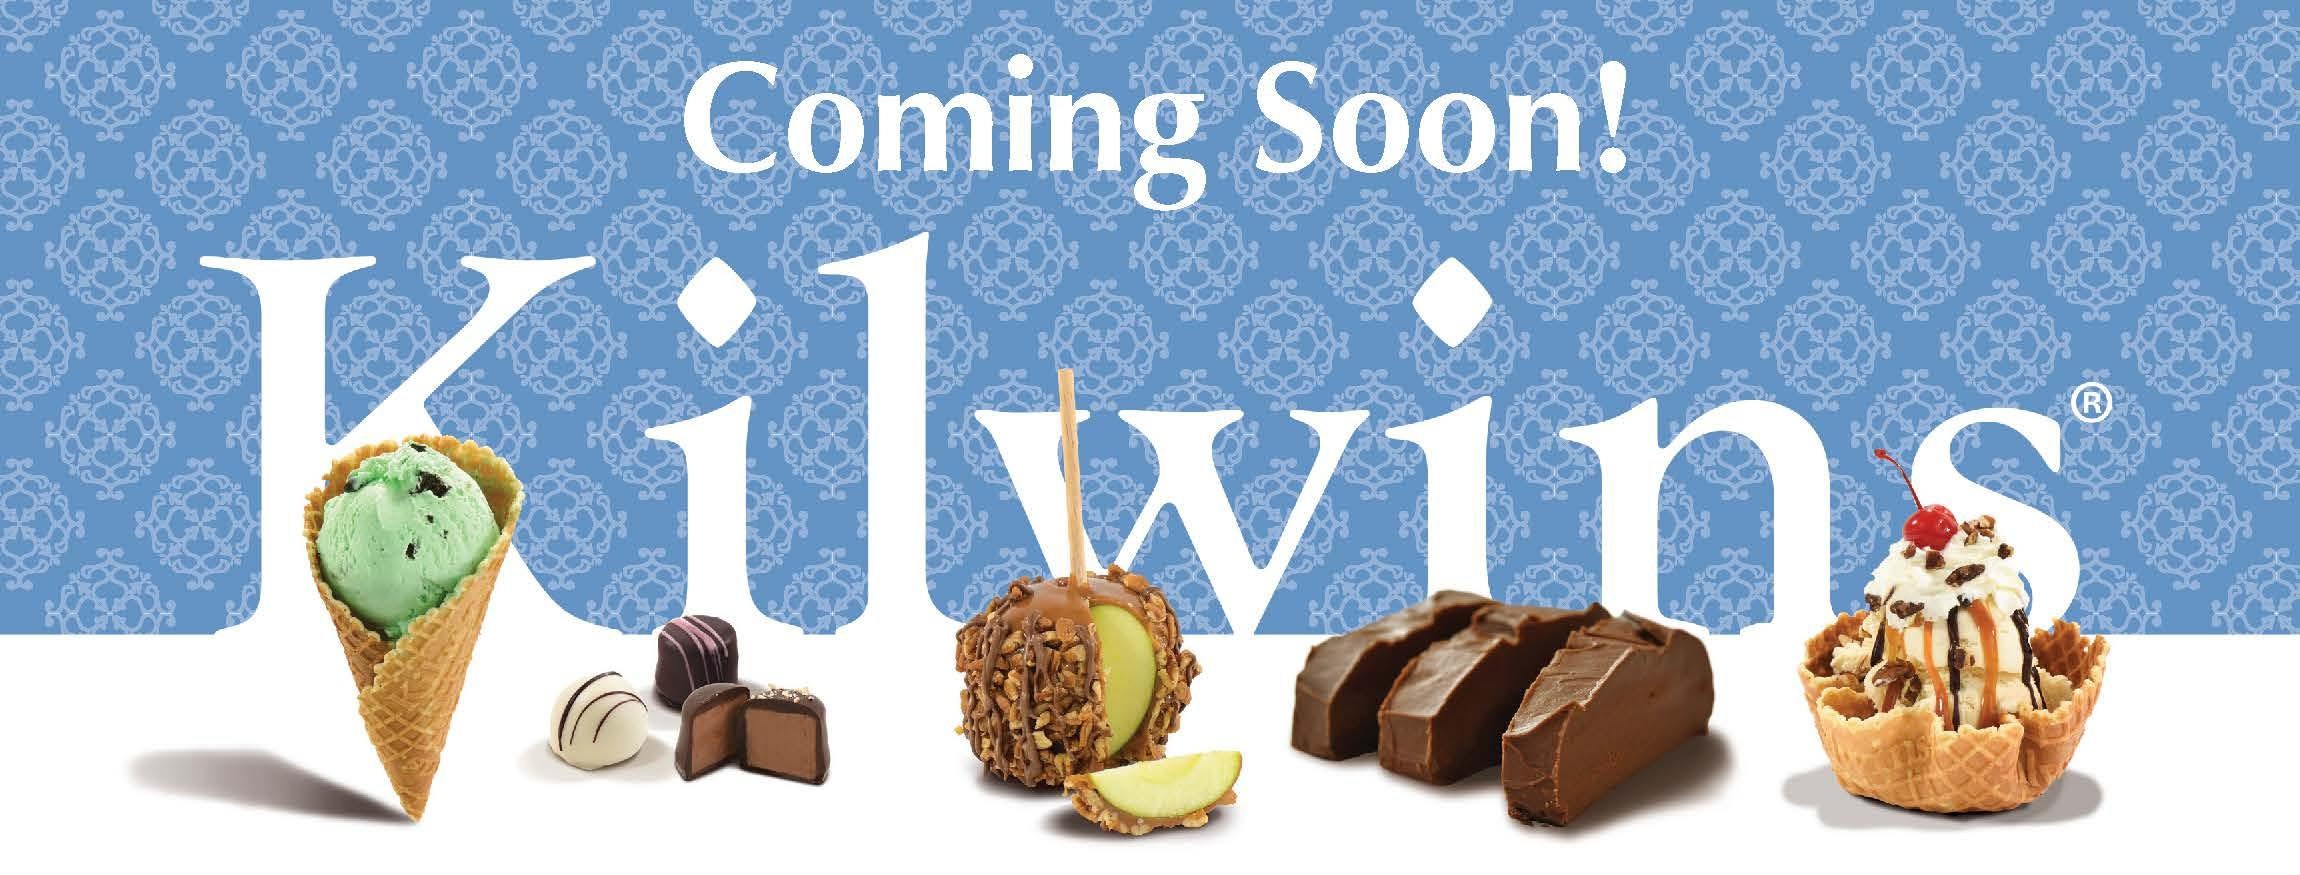 "Kilwins logo with array of Kilwins products and the text, ""Coming Soon!"""